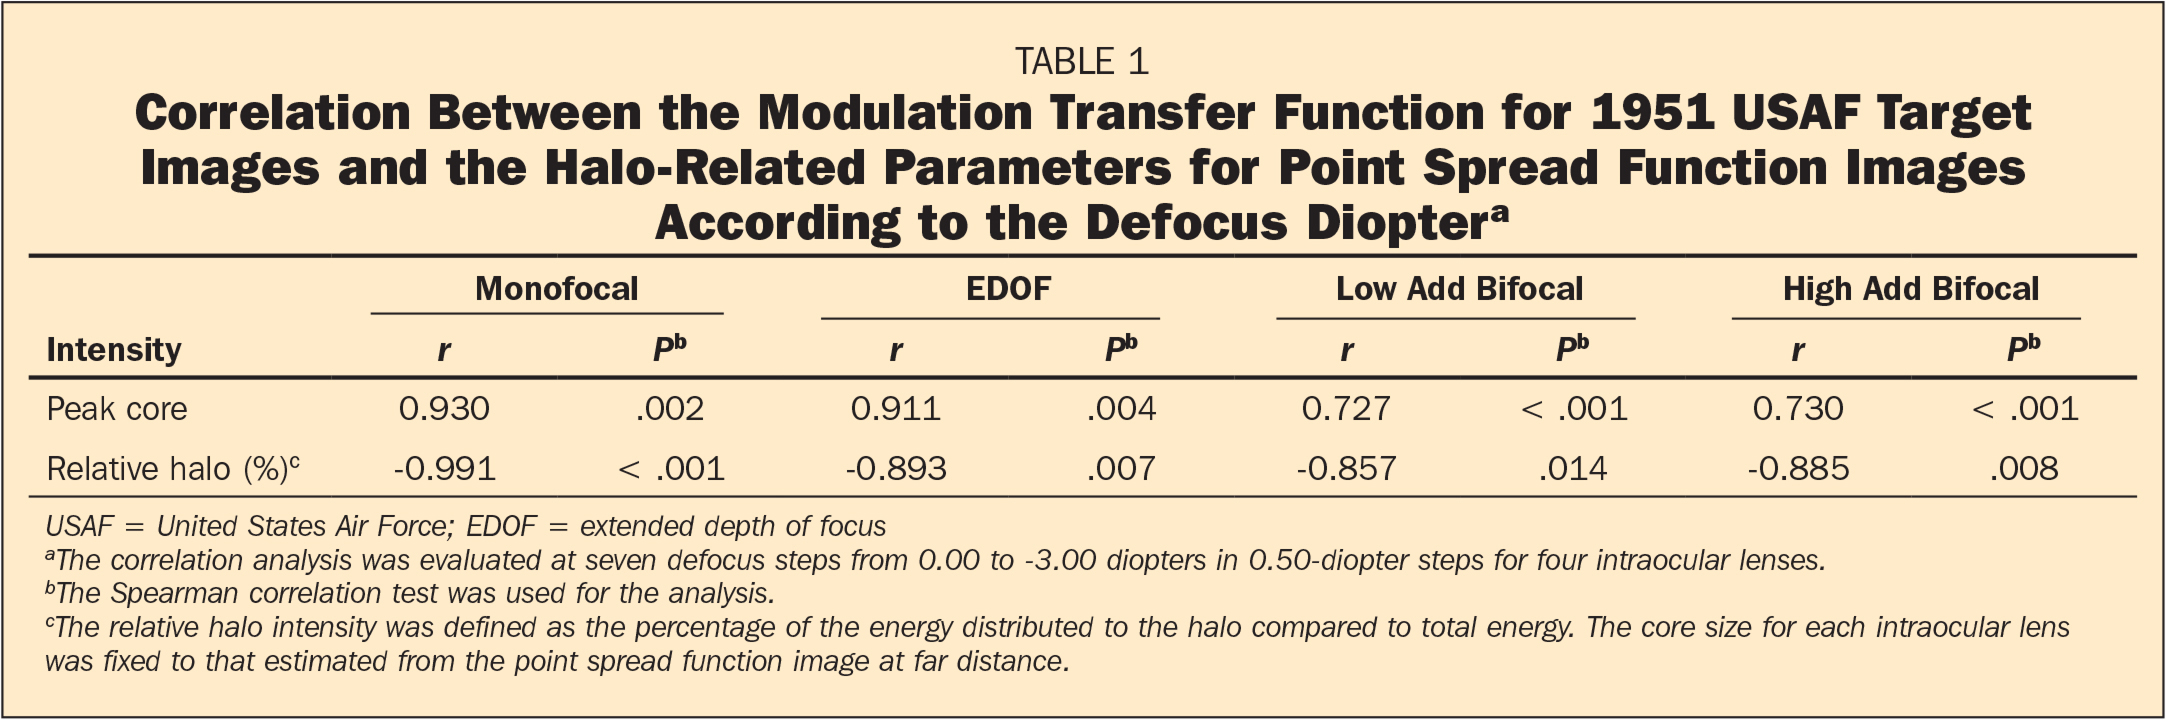 Correlation Between the Modulation Transfer Function for 1951 USAF Target Images and the Halo-Related Parameters for Point Spread Function Images According to the Defocus Dioptera